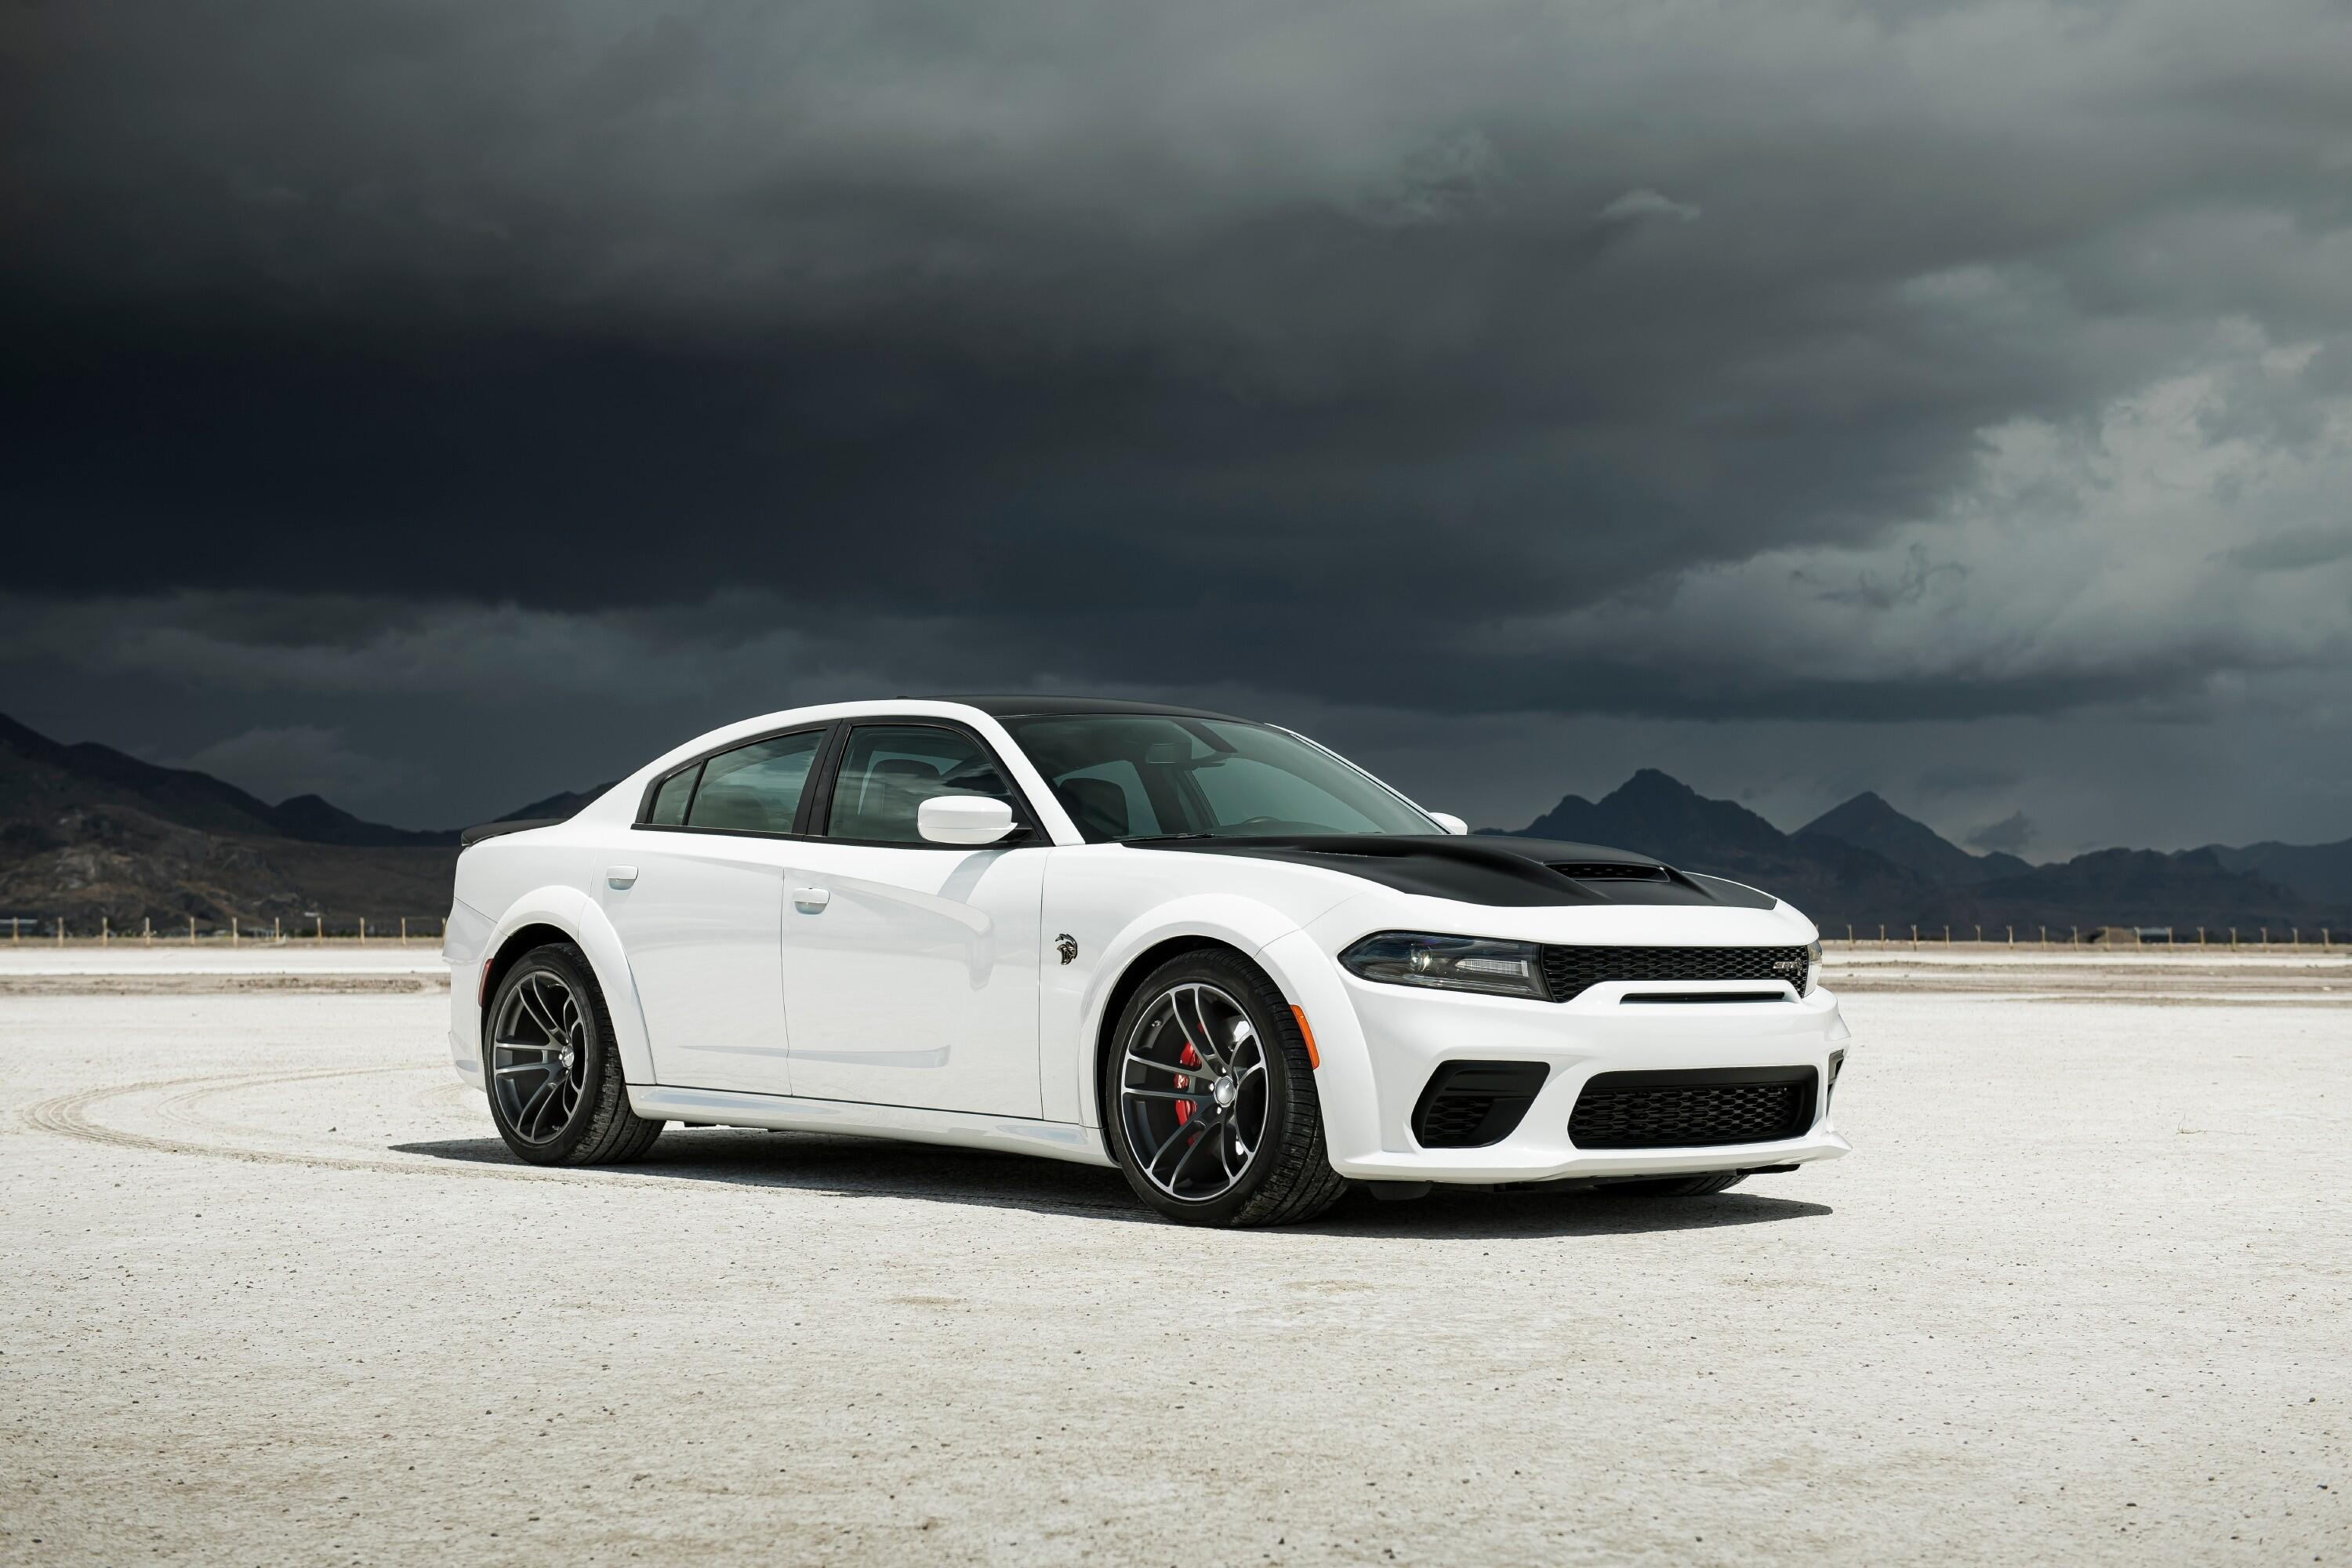 2021-dodge-charger-redeye-022